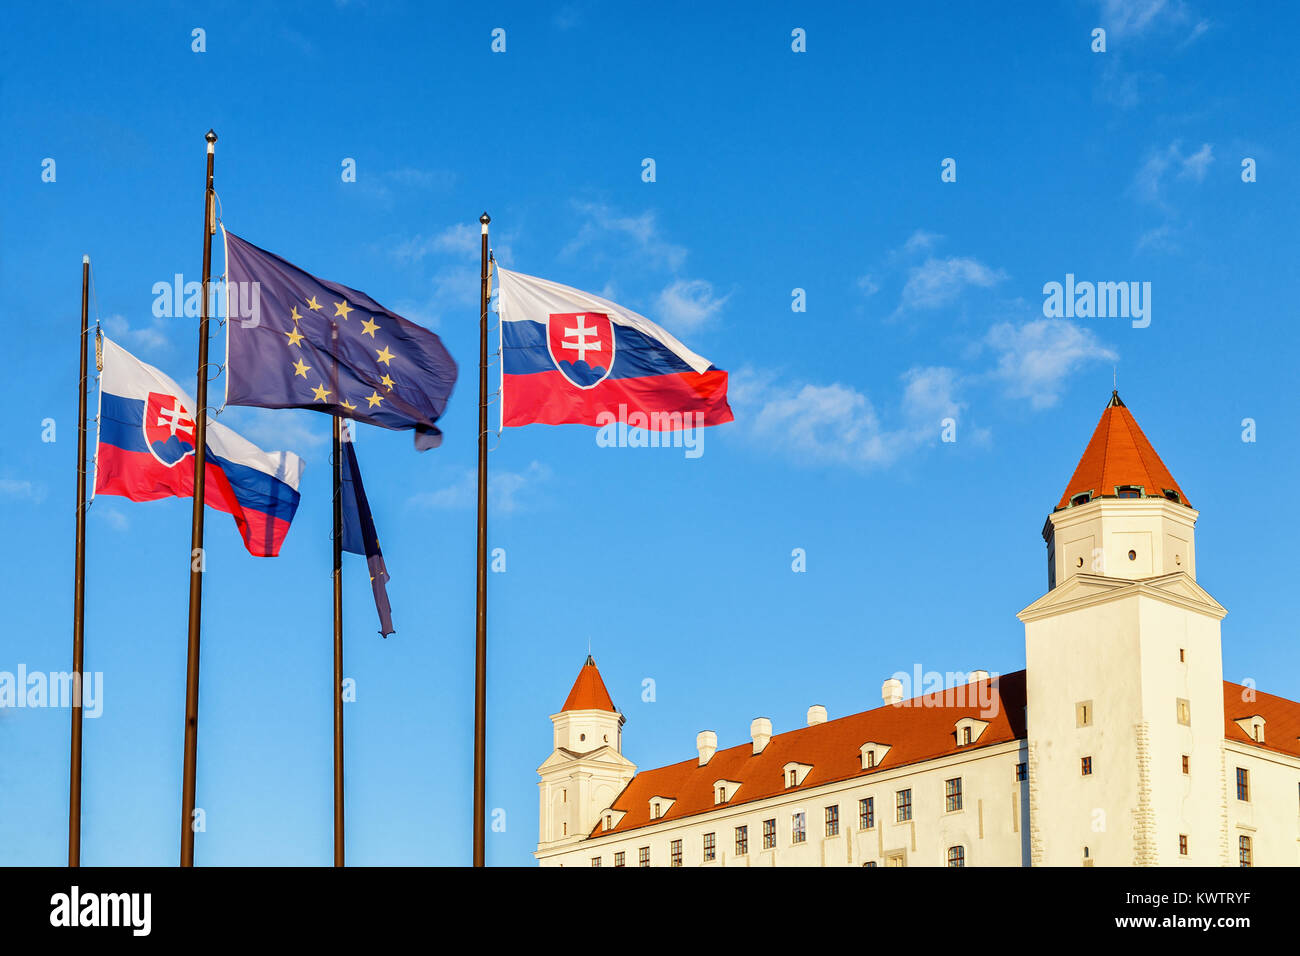 Bratislava castle and flags of Slovak republic and European Union with blue sky in background. Sunny windy day. - Stock Image